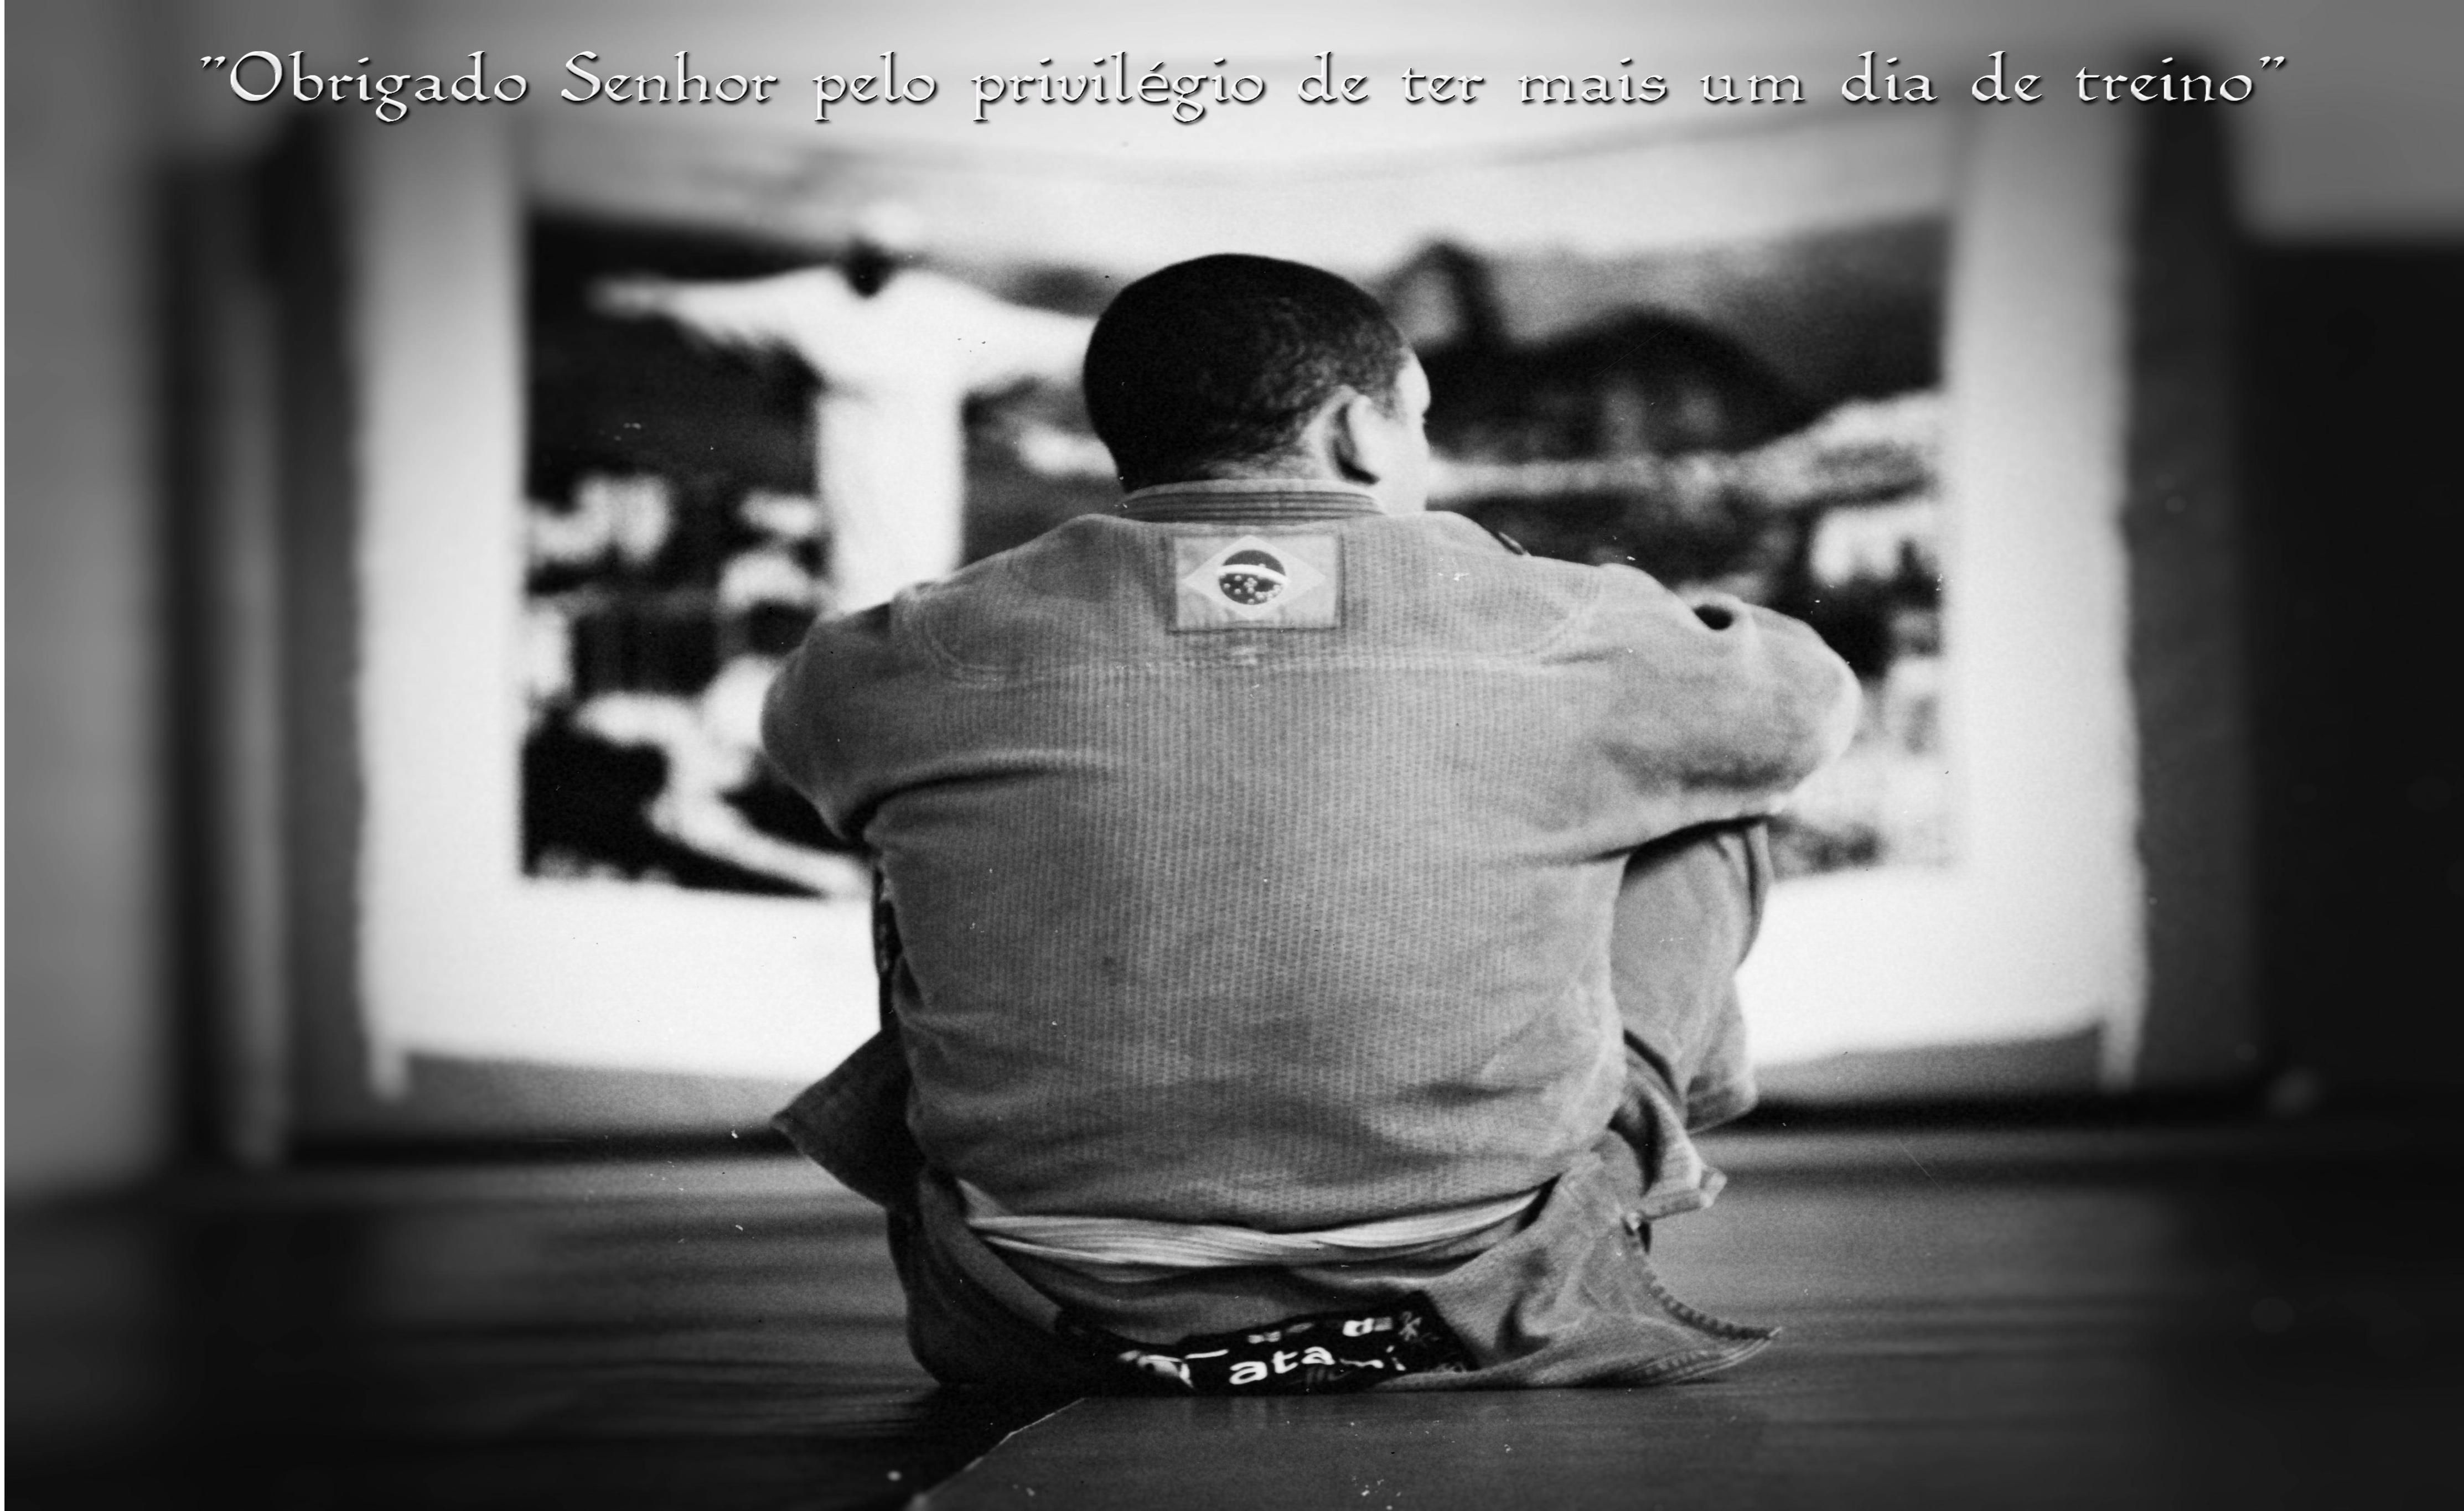 Bjj quotes wallpaper album on quotesvil jiu jitsu bjj quotes wallpaper album on quotesvil voltagebd Image collections